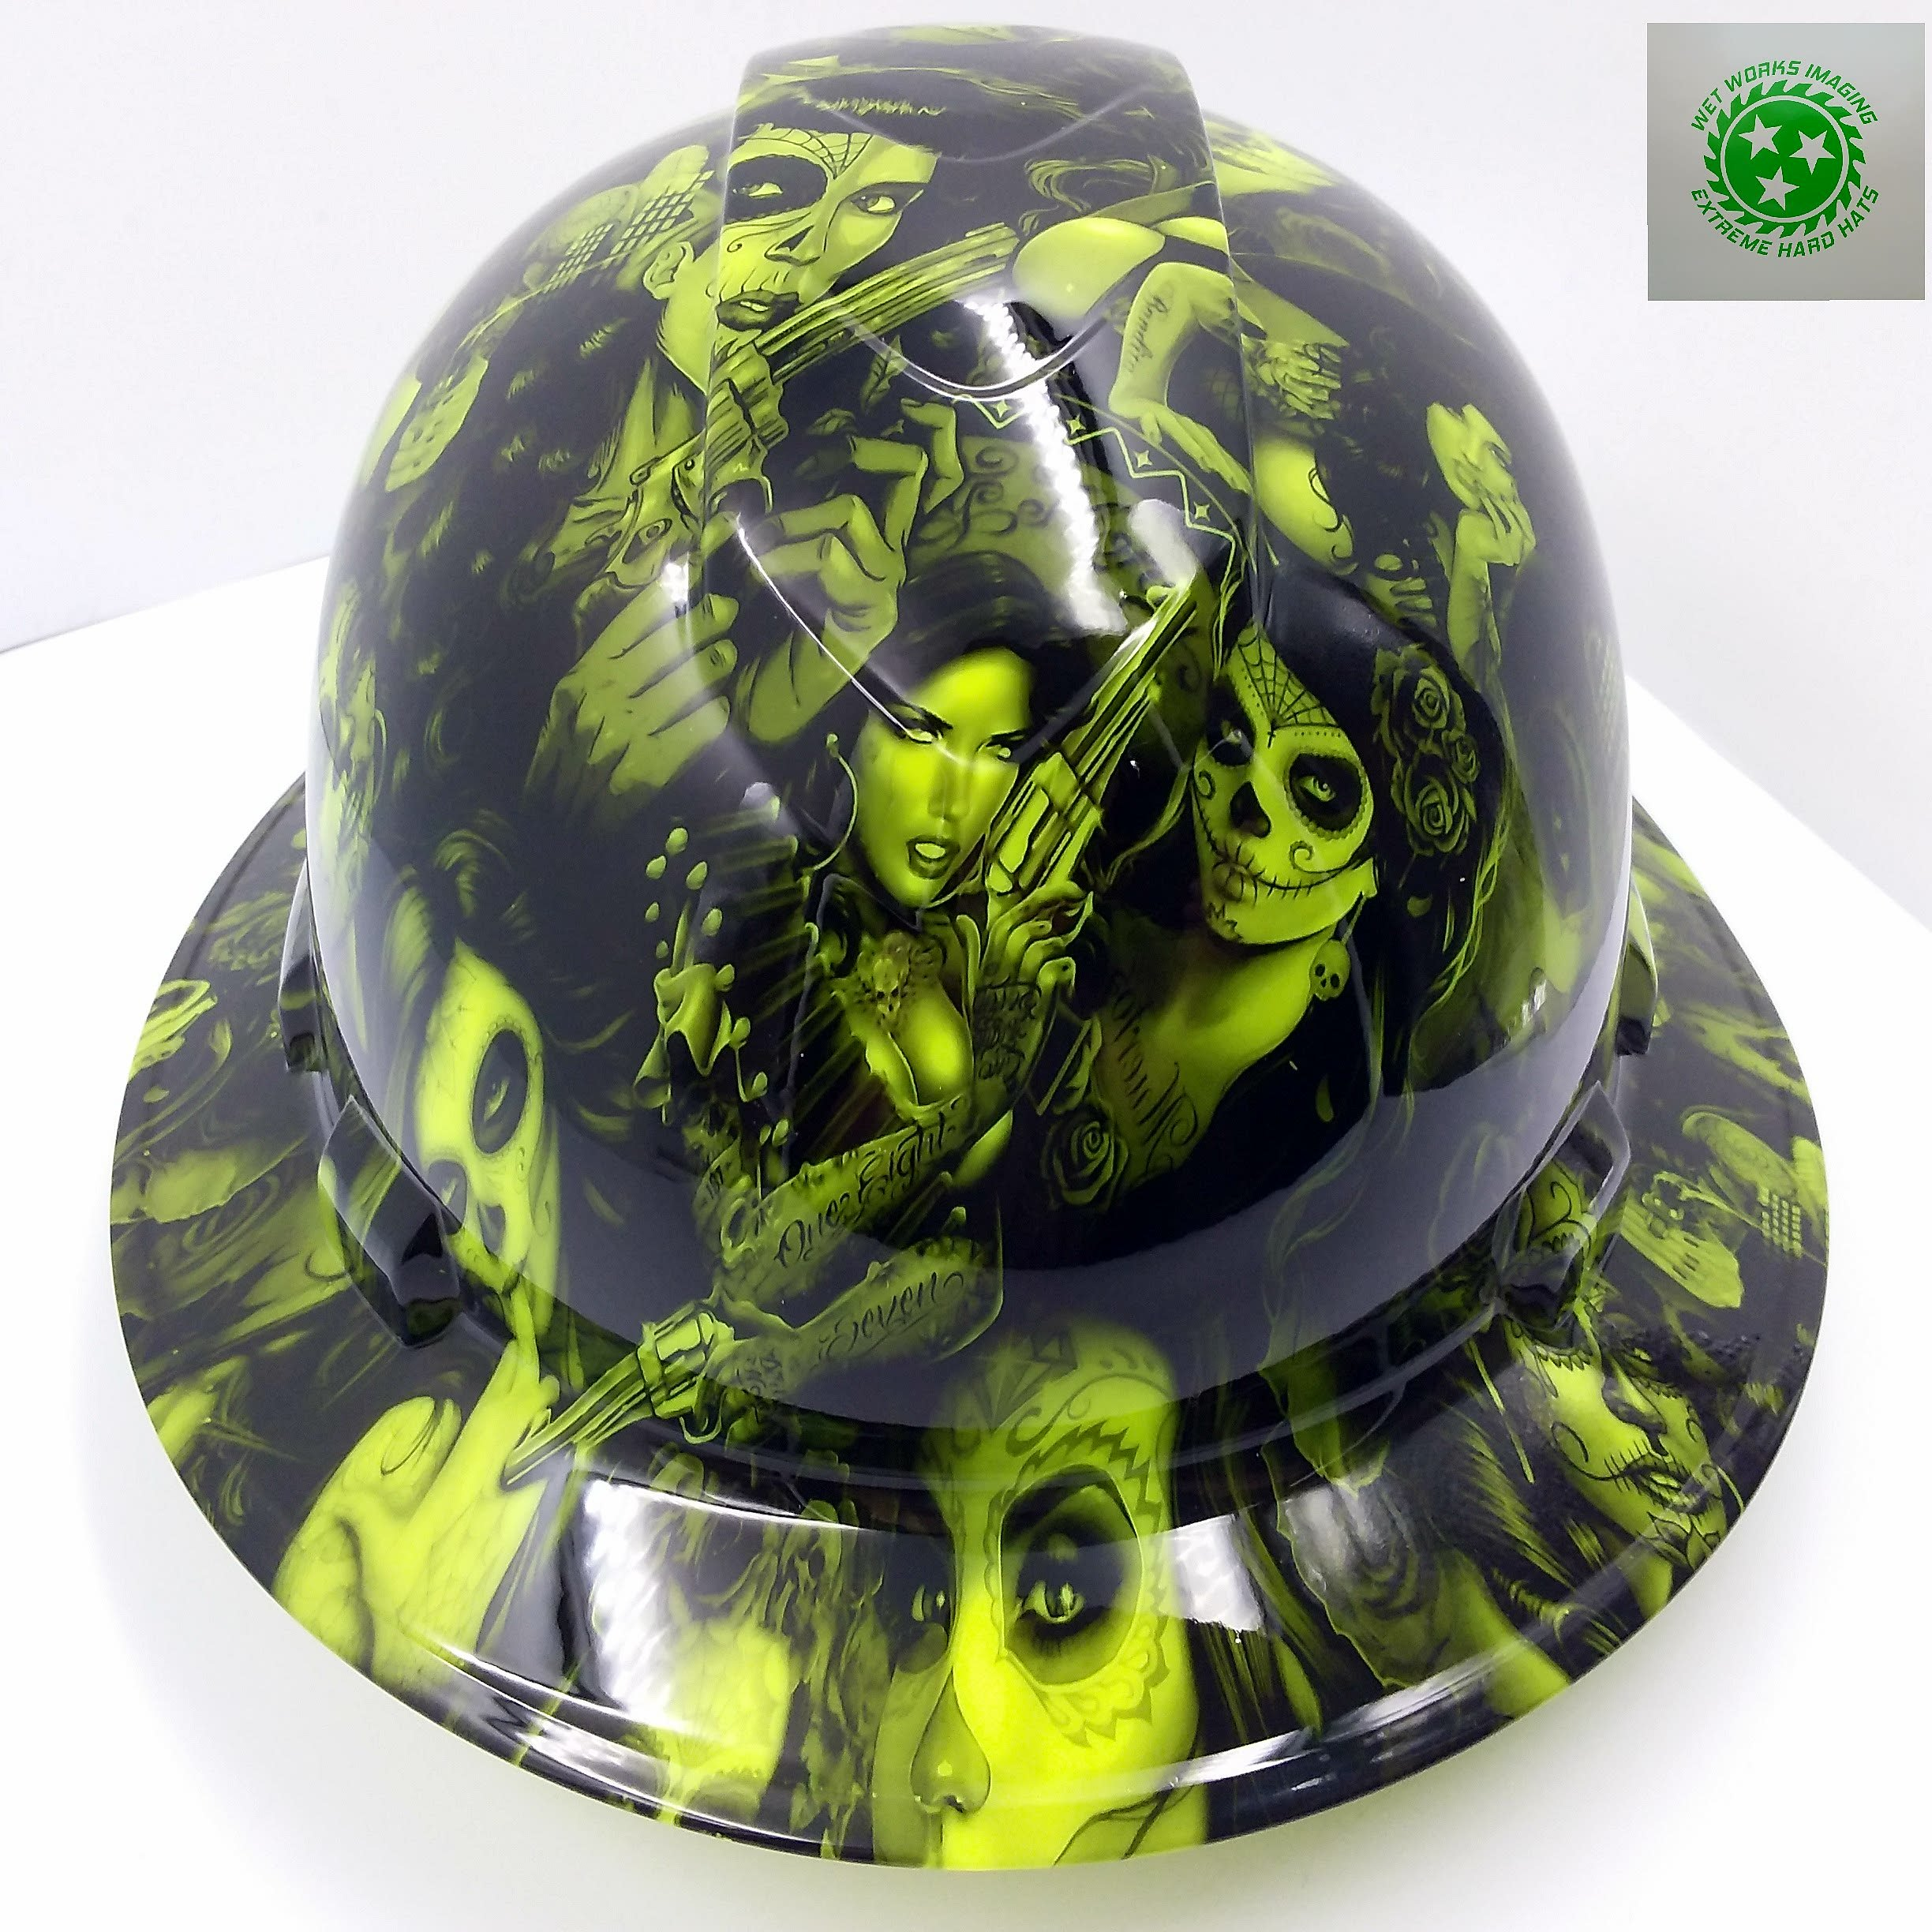 Wet Works Imaging Customized Pyramex Full BRIM NEW GREEN TATTOO BABES HARD HAT With Ratcheting Suspension